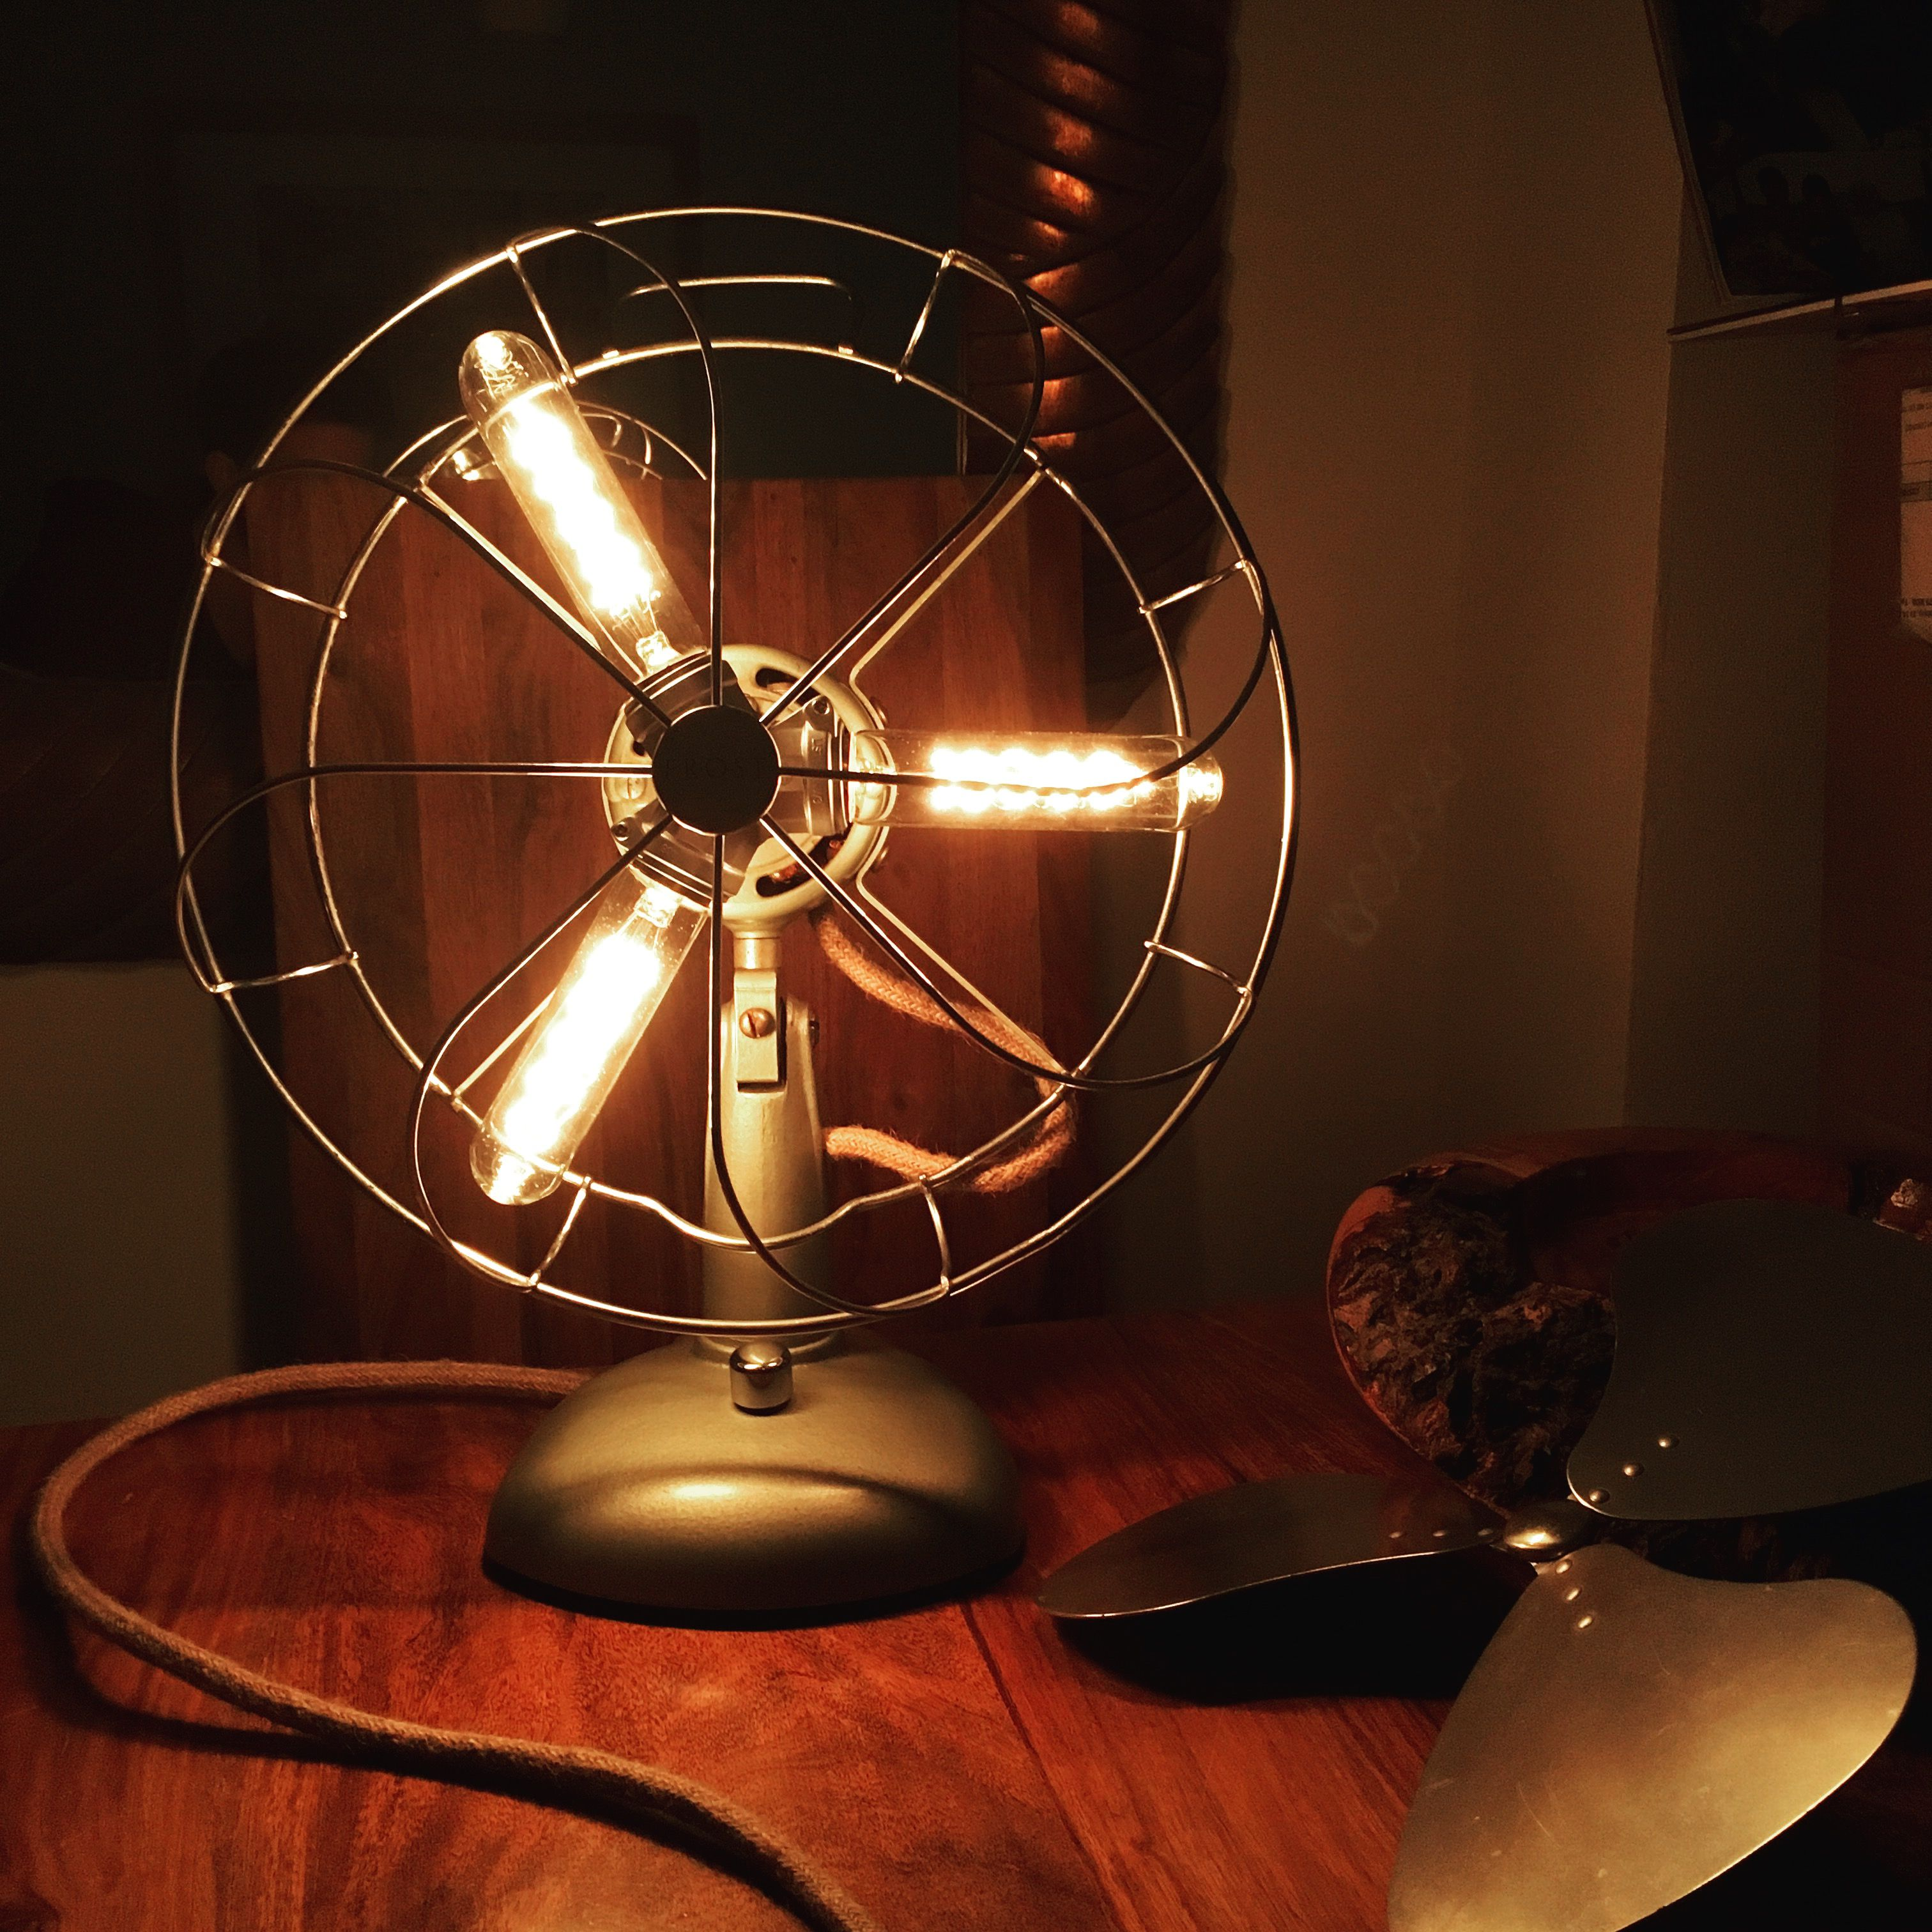 Conversion of a 1940s desk fan into a Steampunk dimmable